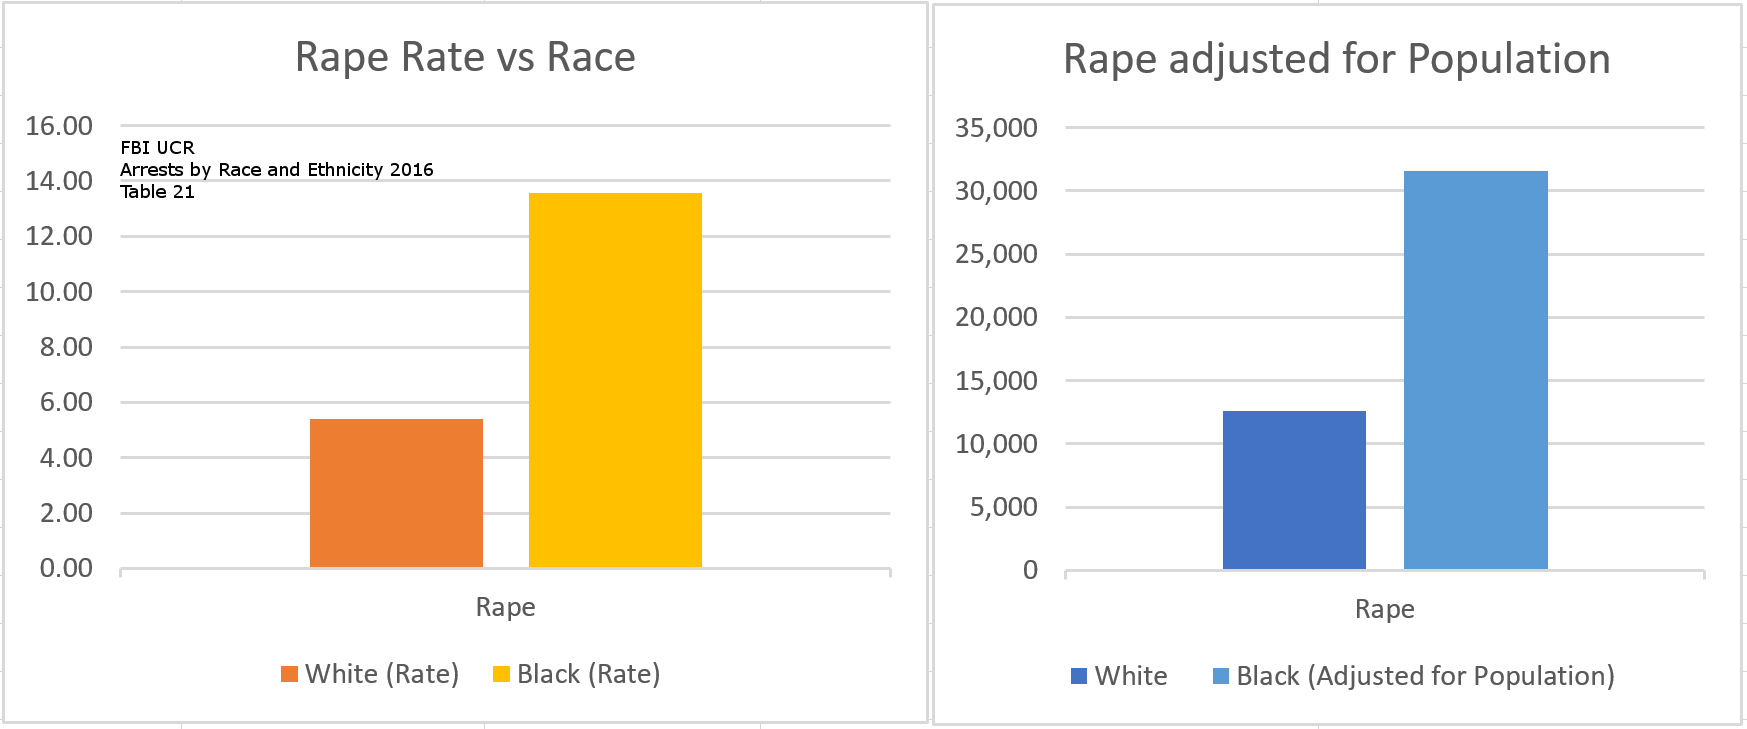 https://cdn.discordapp.com/attachments/454978255225749524/469095745786740737/Rape_graphs.png